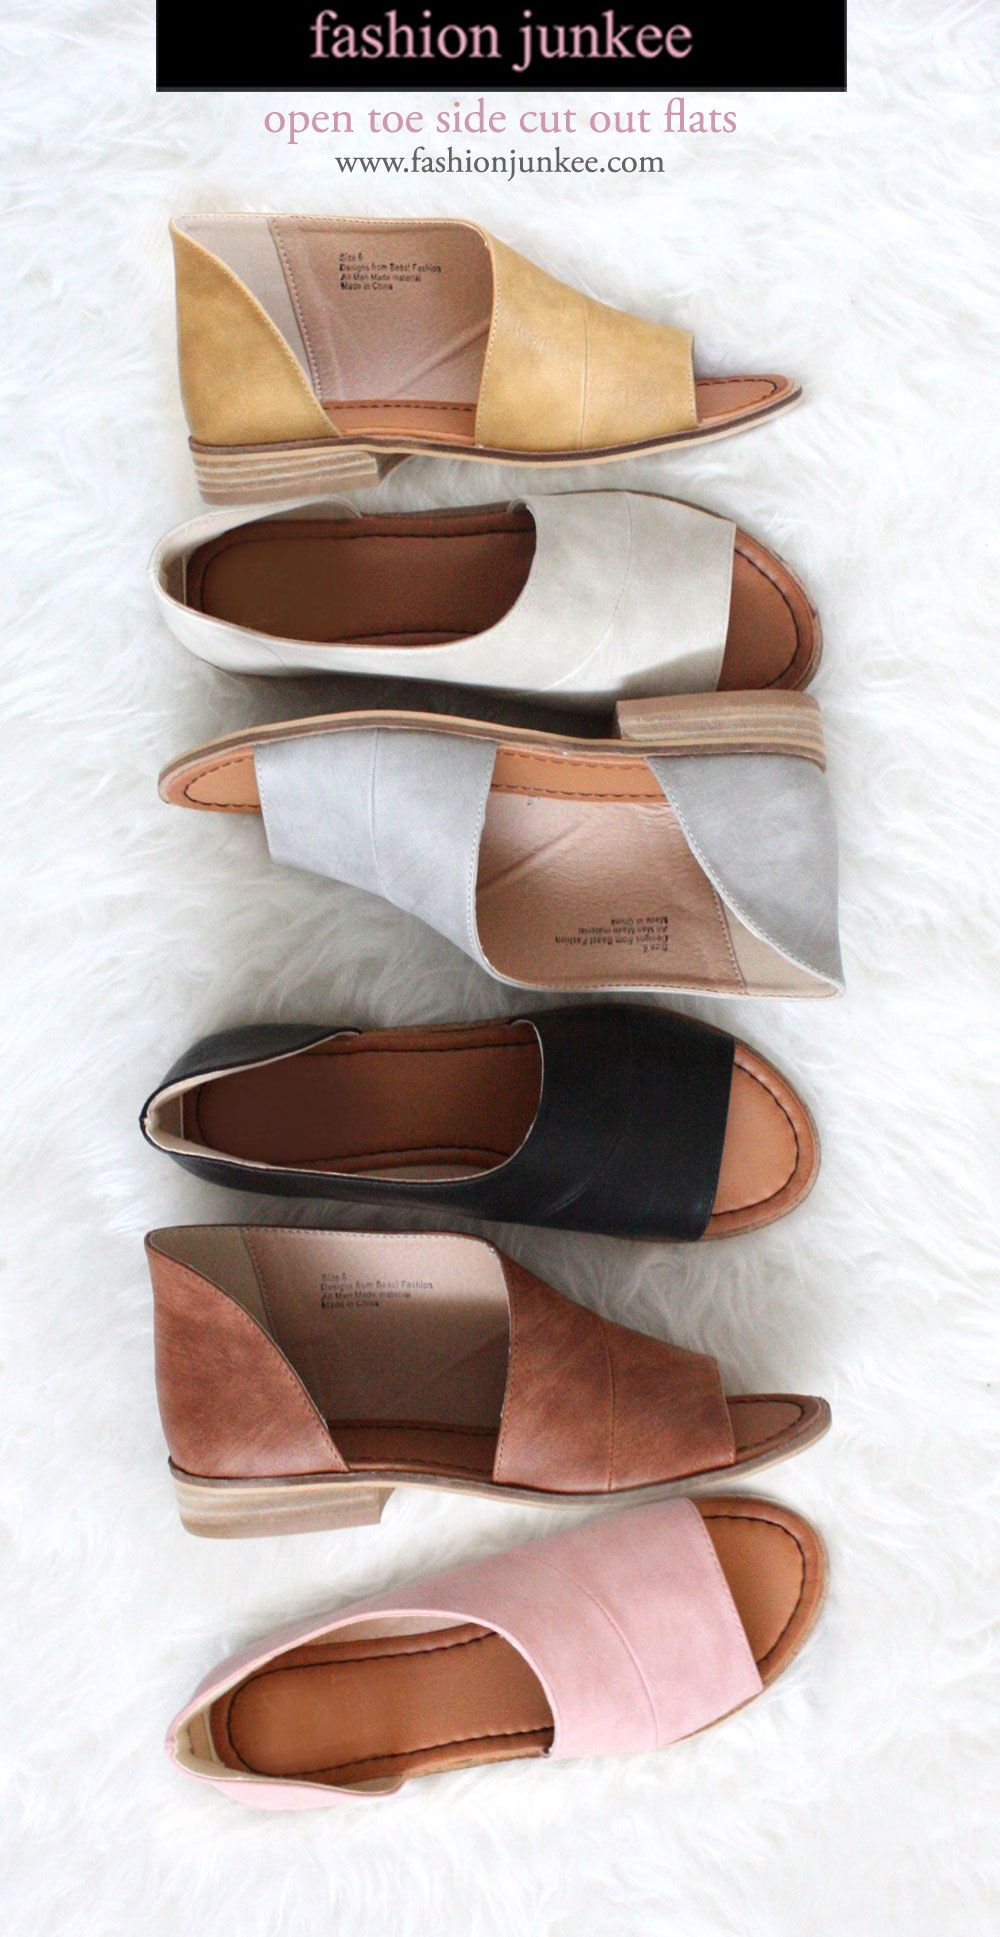 Open Toe Faux Leather Side Cutout Flats Comes in 8 Colors